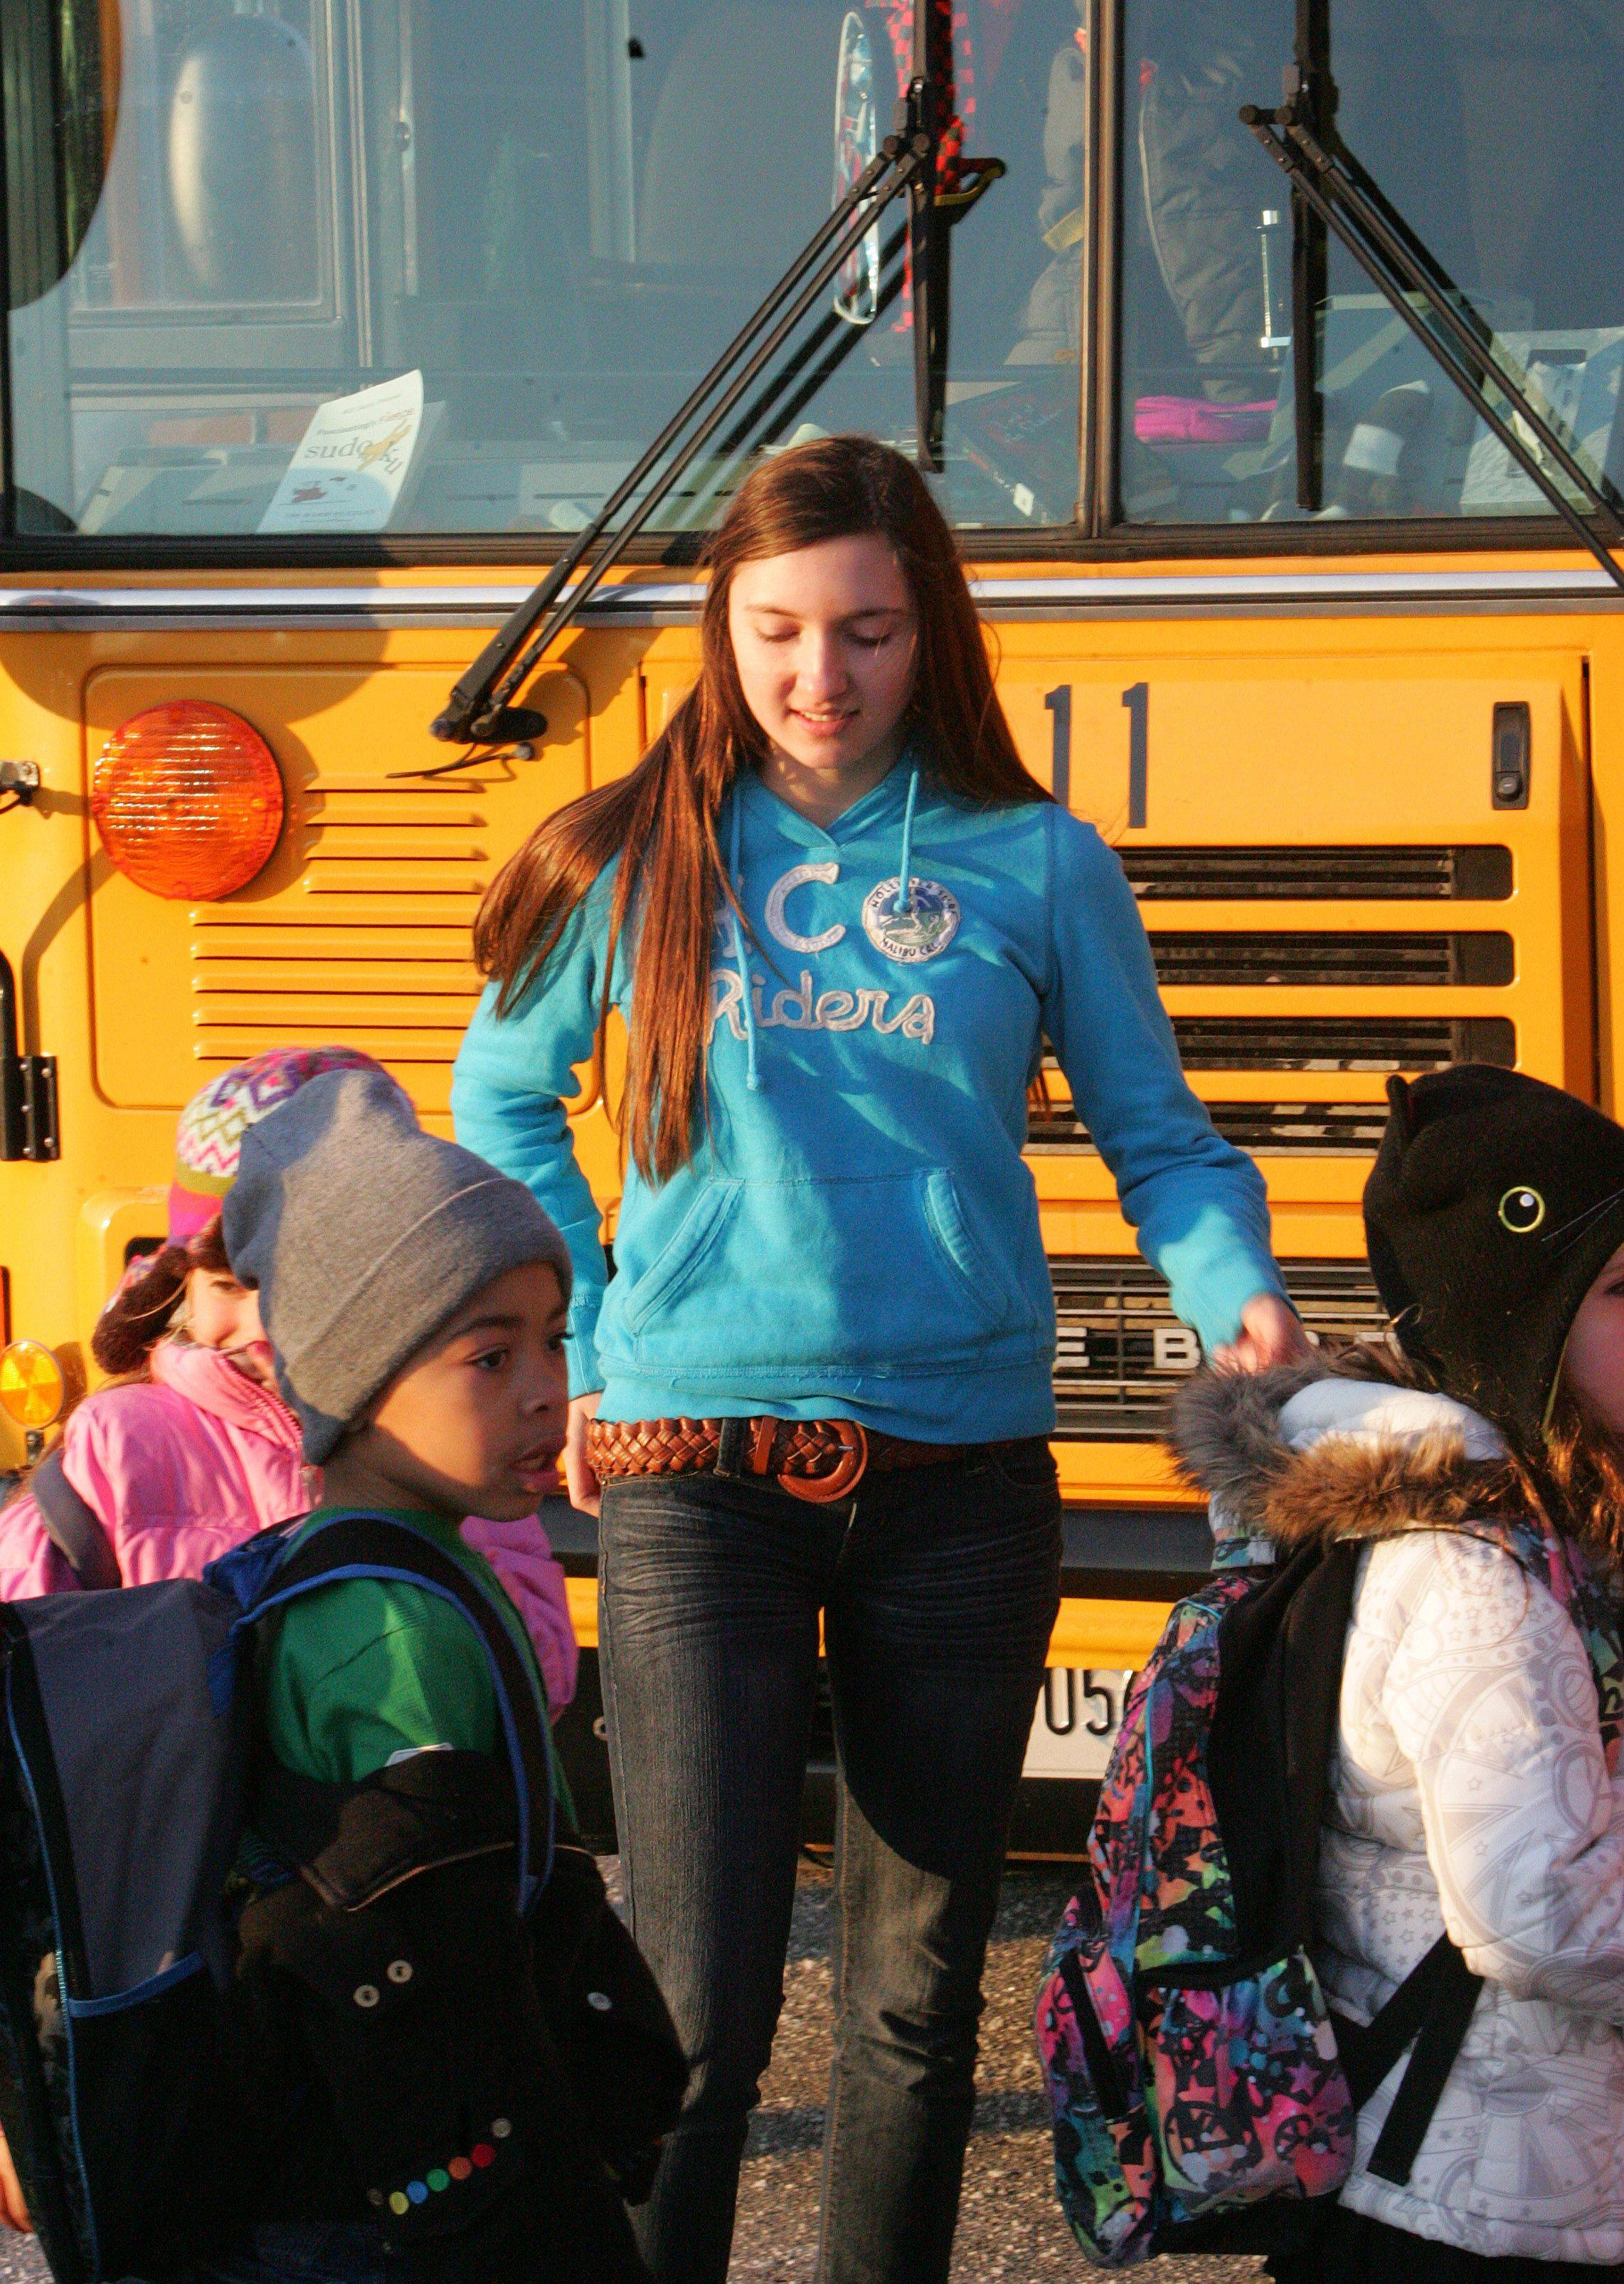 Eighth-grader Diana Guliyeva helps kids get on the bus at Fremont School District 79. Eighth-graders at Fremeont Middle School ride as patrol guards on buses for kindergarten through fifth-grade students.